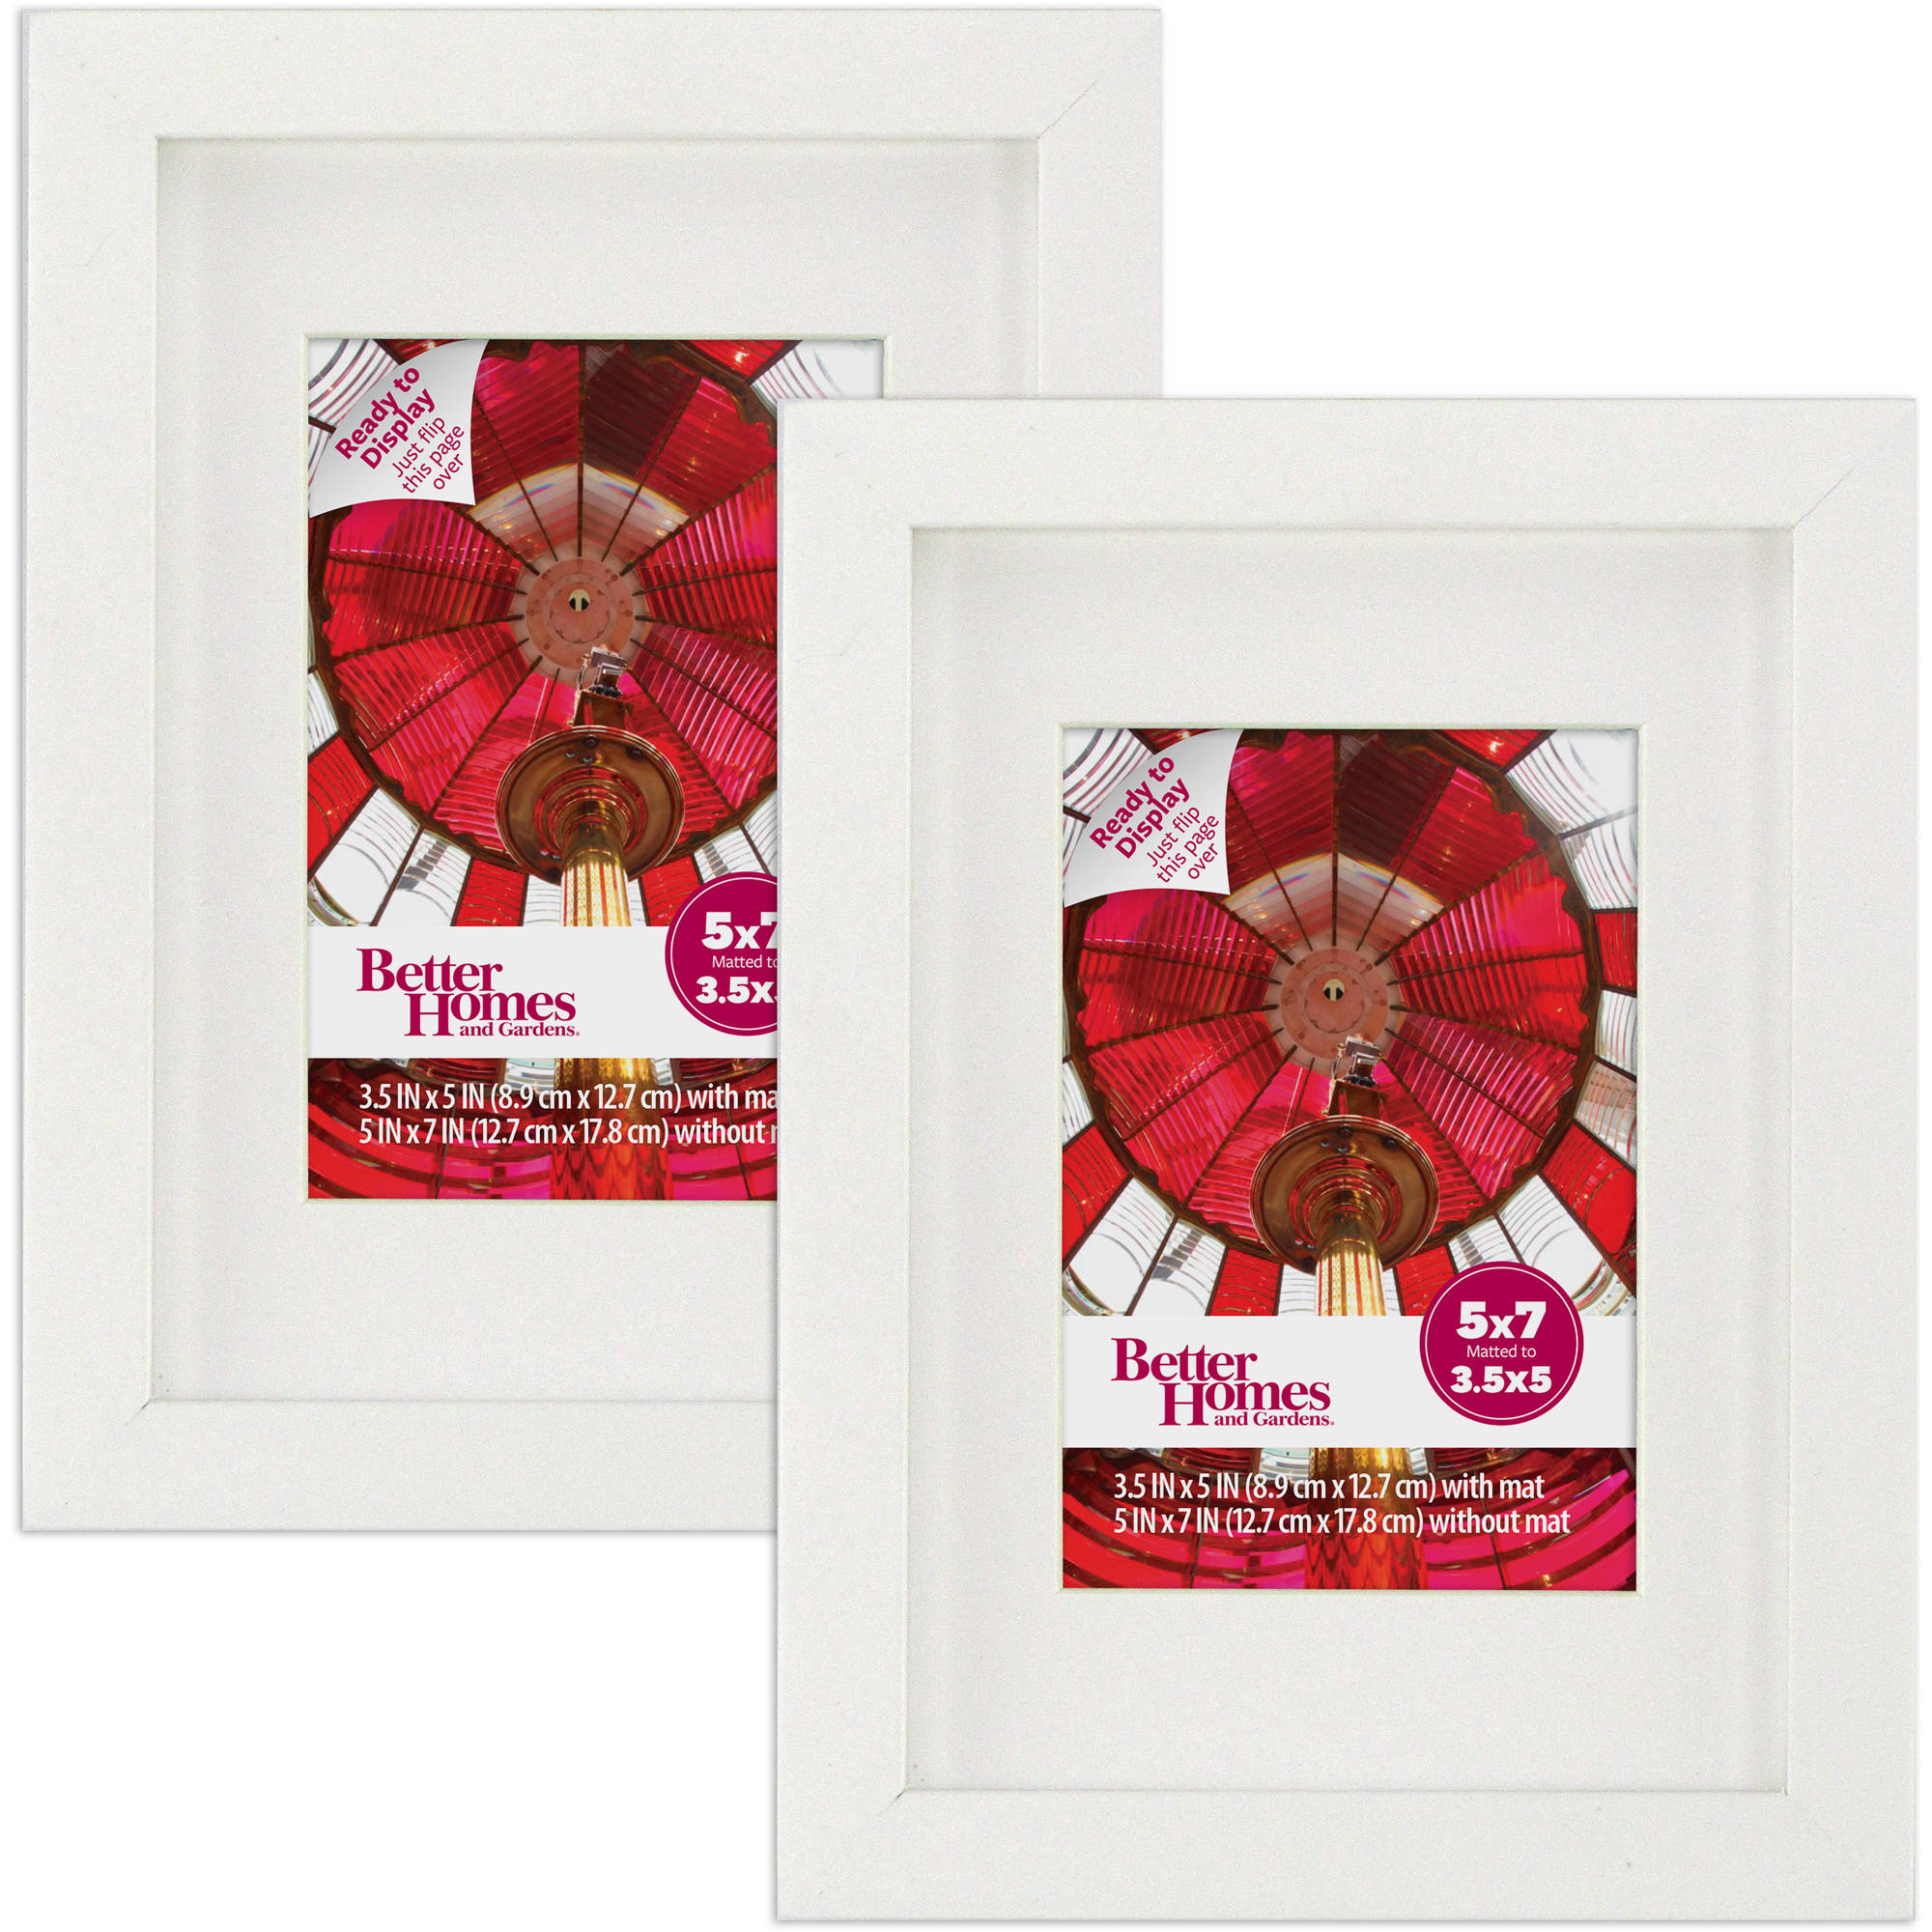 Better Homes and Gardens 5x7 Frame Set of 2 White Finish